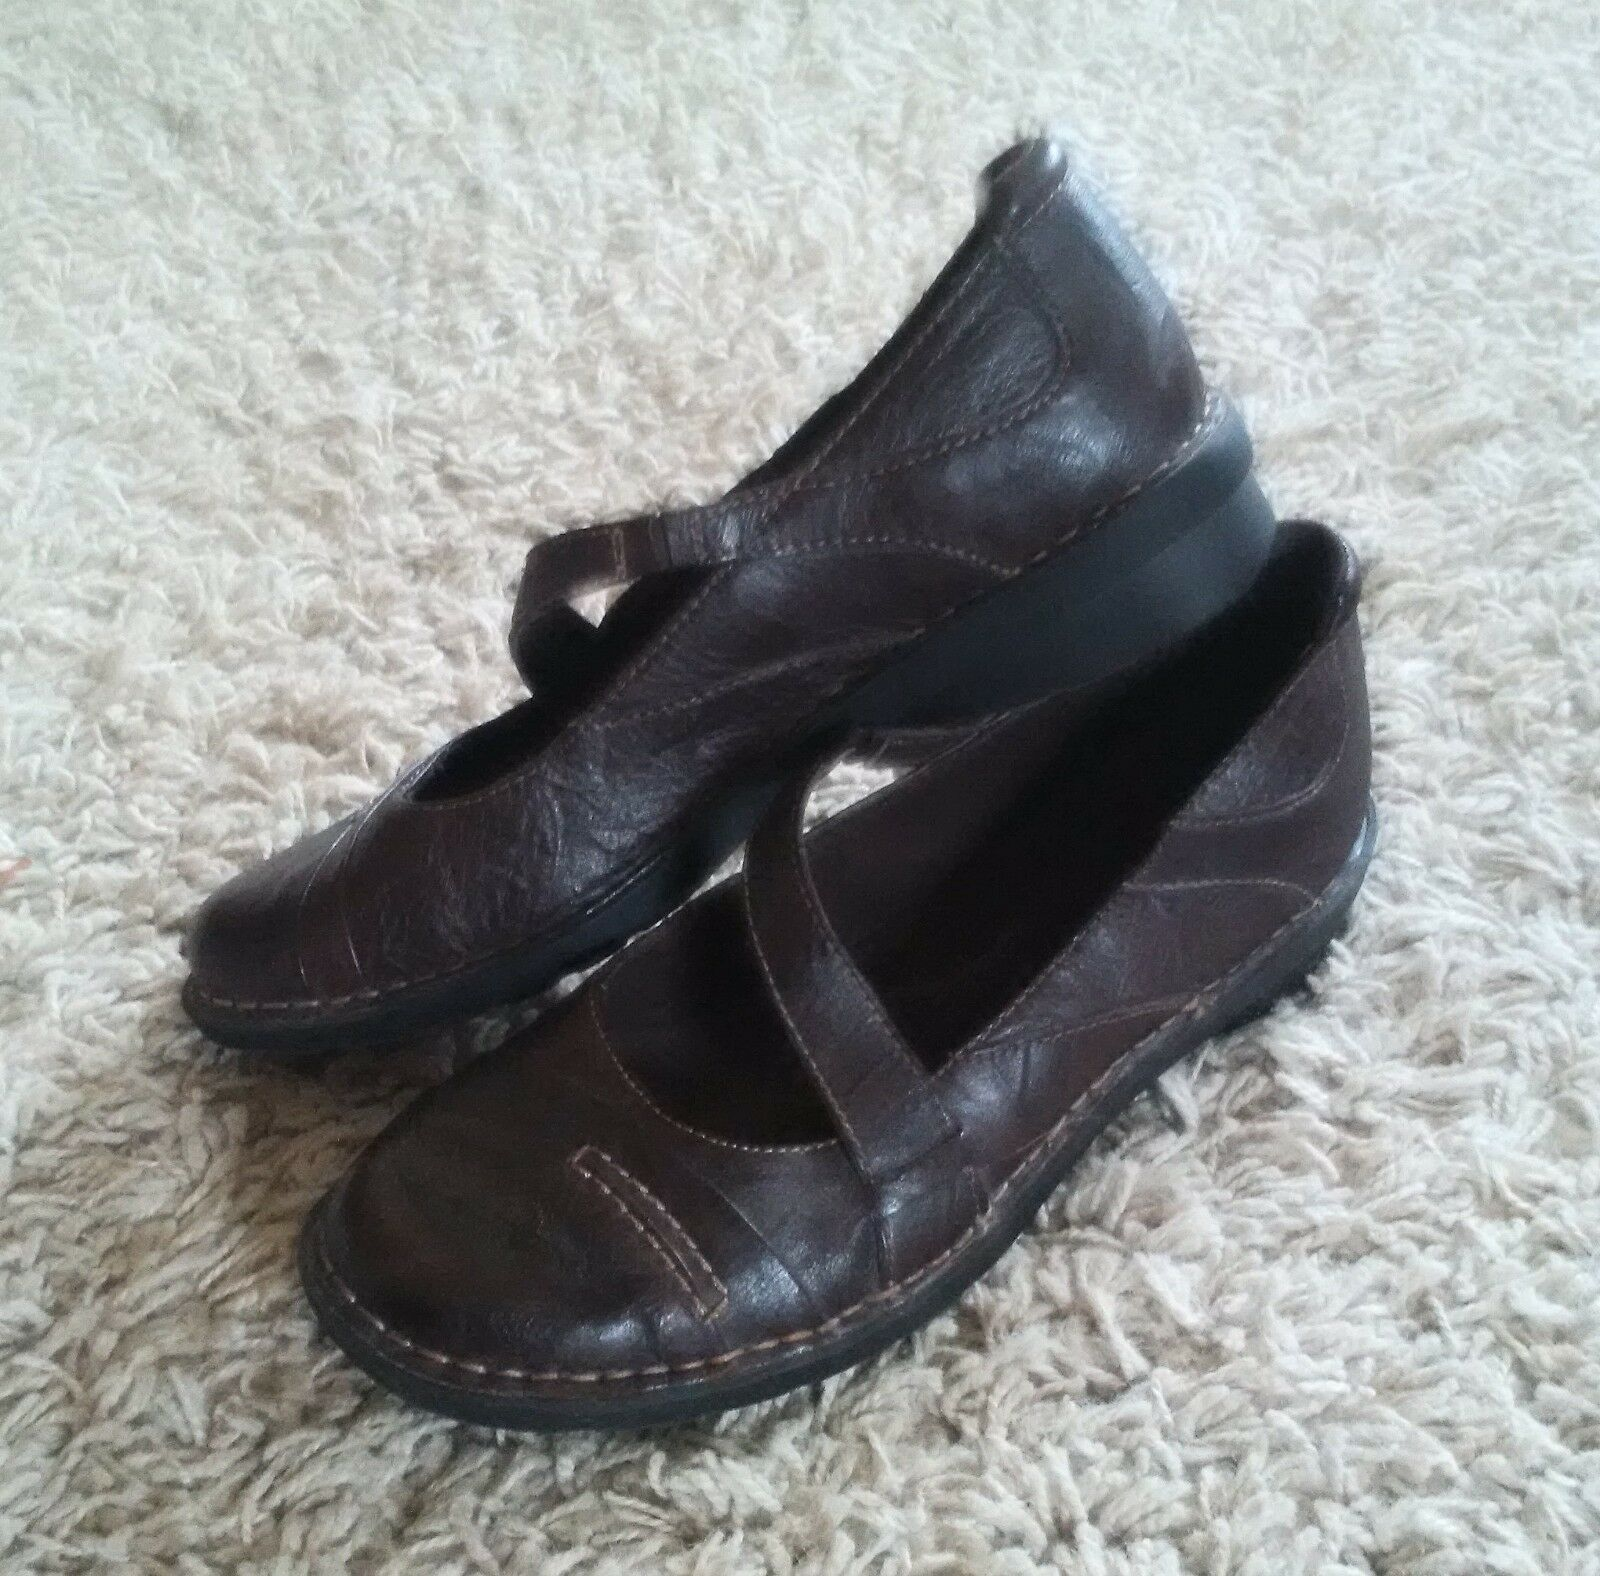 CLARKS Bendable Brown Leather Mary Janes - Womens size 6.5 EUC